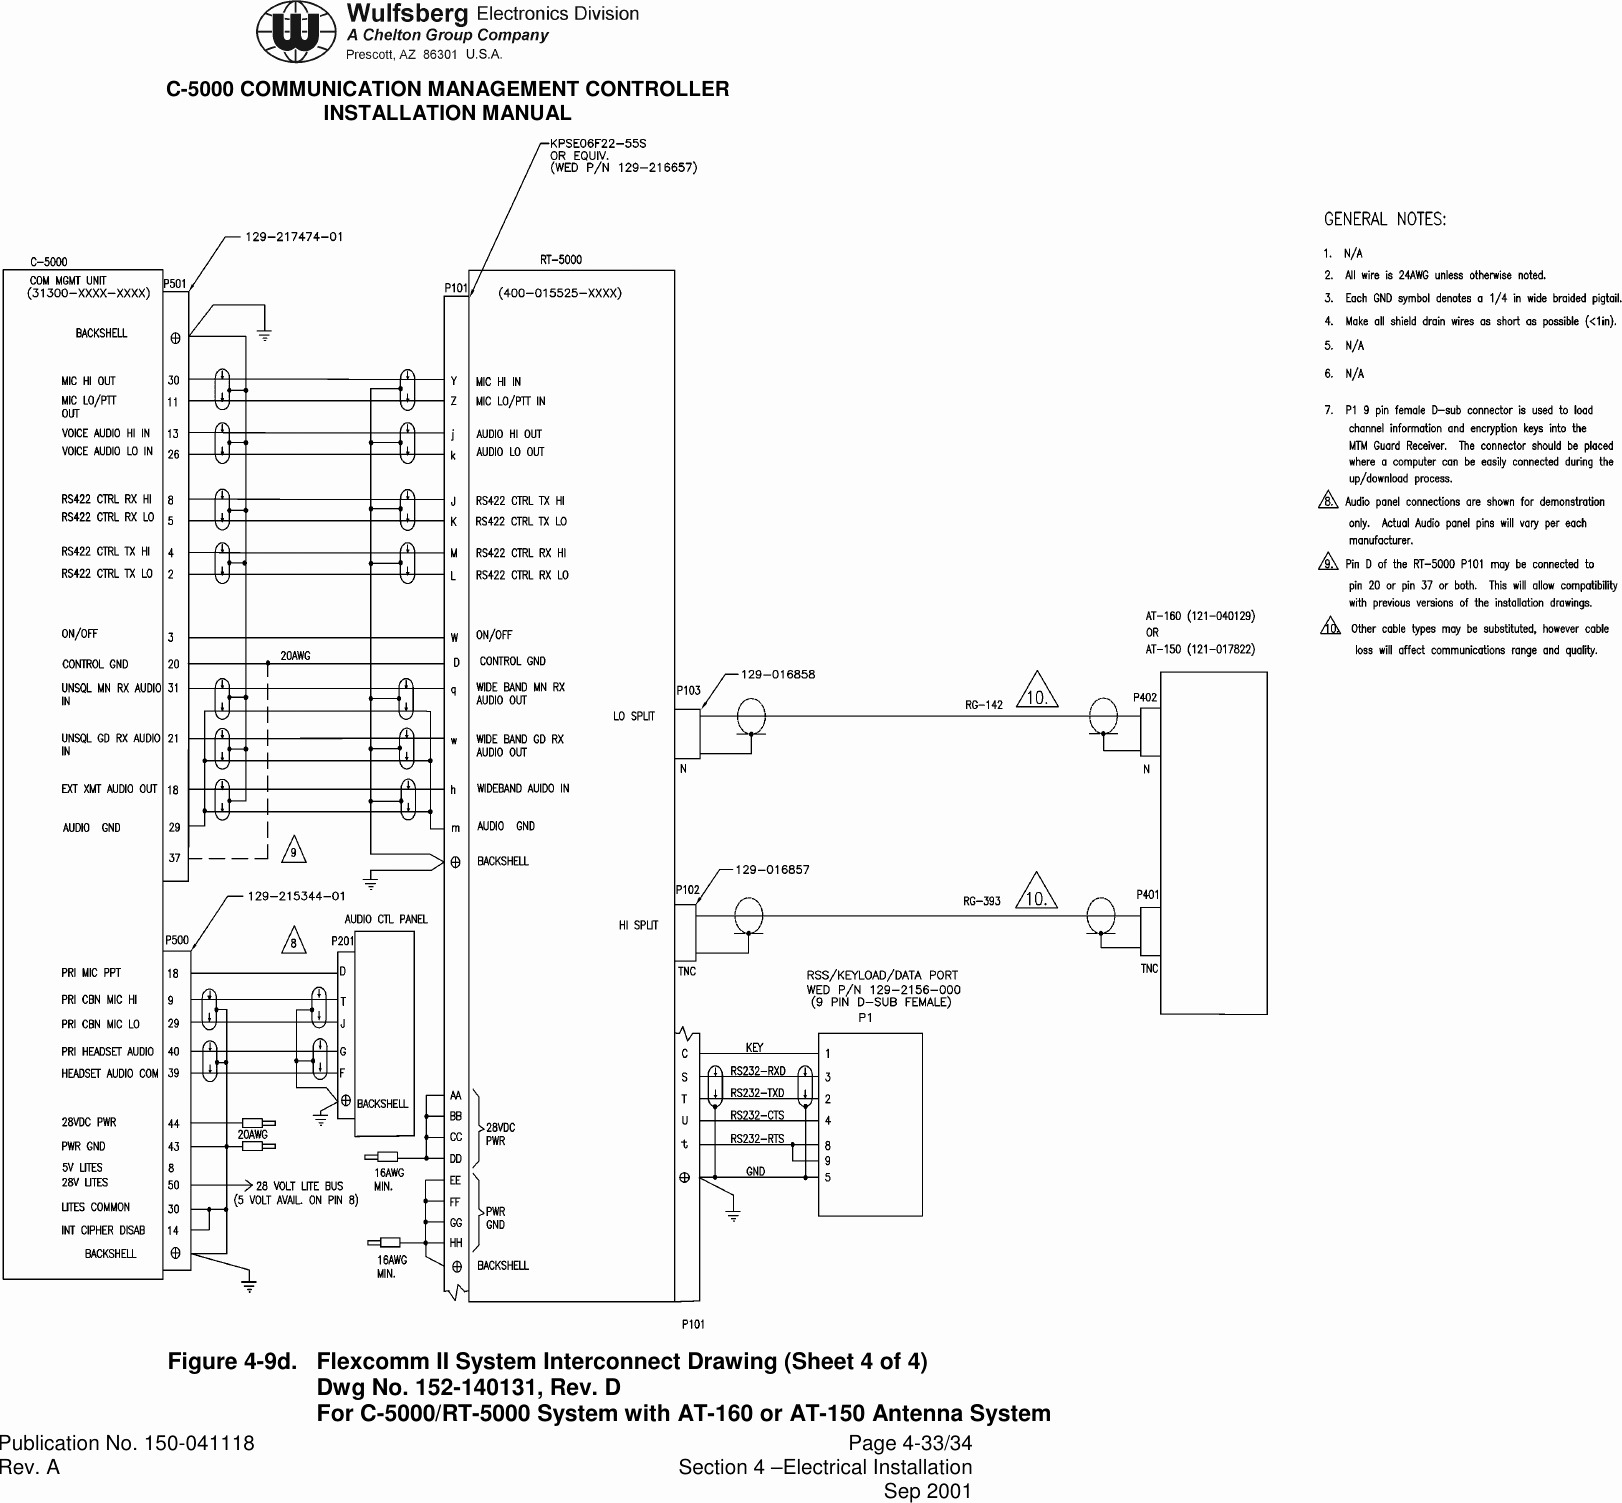 Aircraft Wiring Harness Drawing : Aircraft wiring diagram library